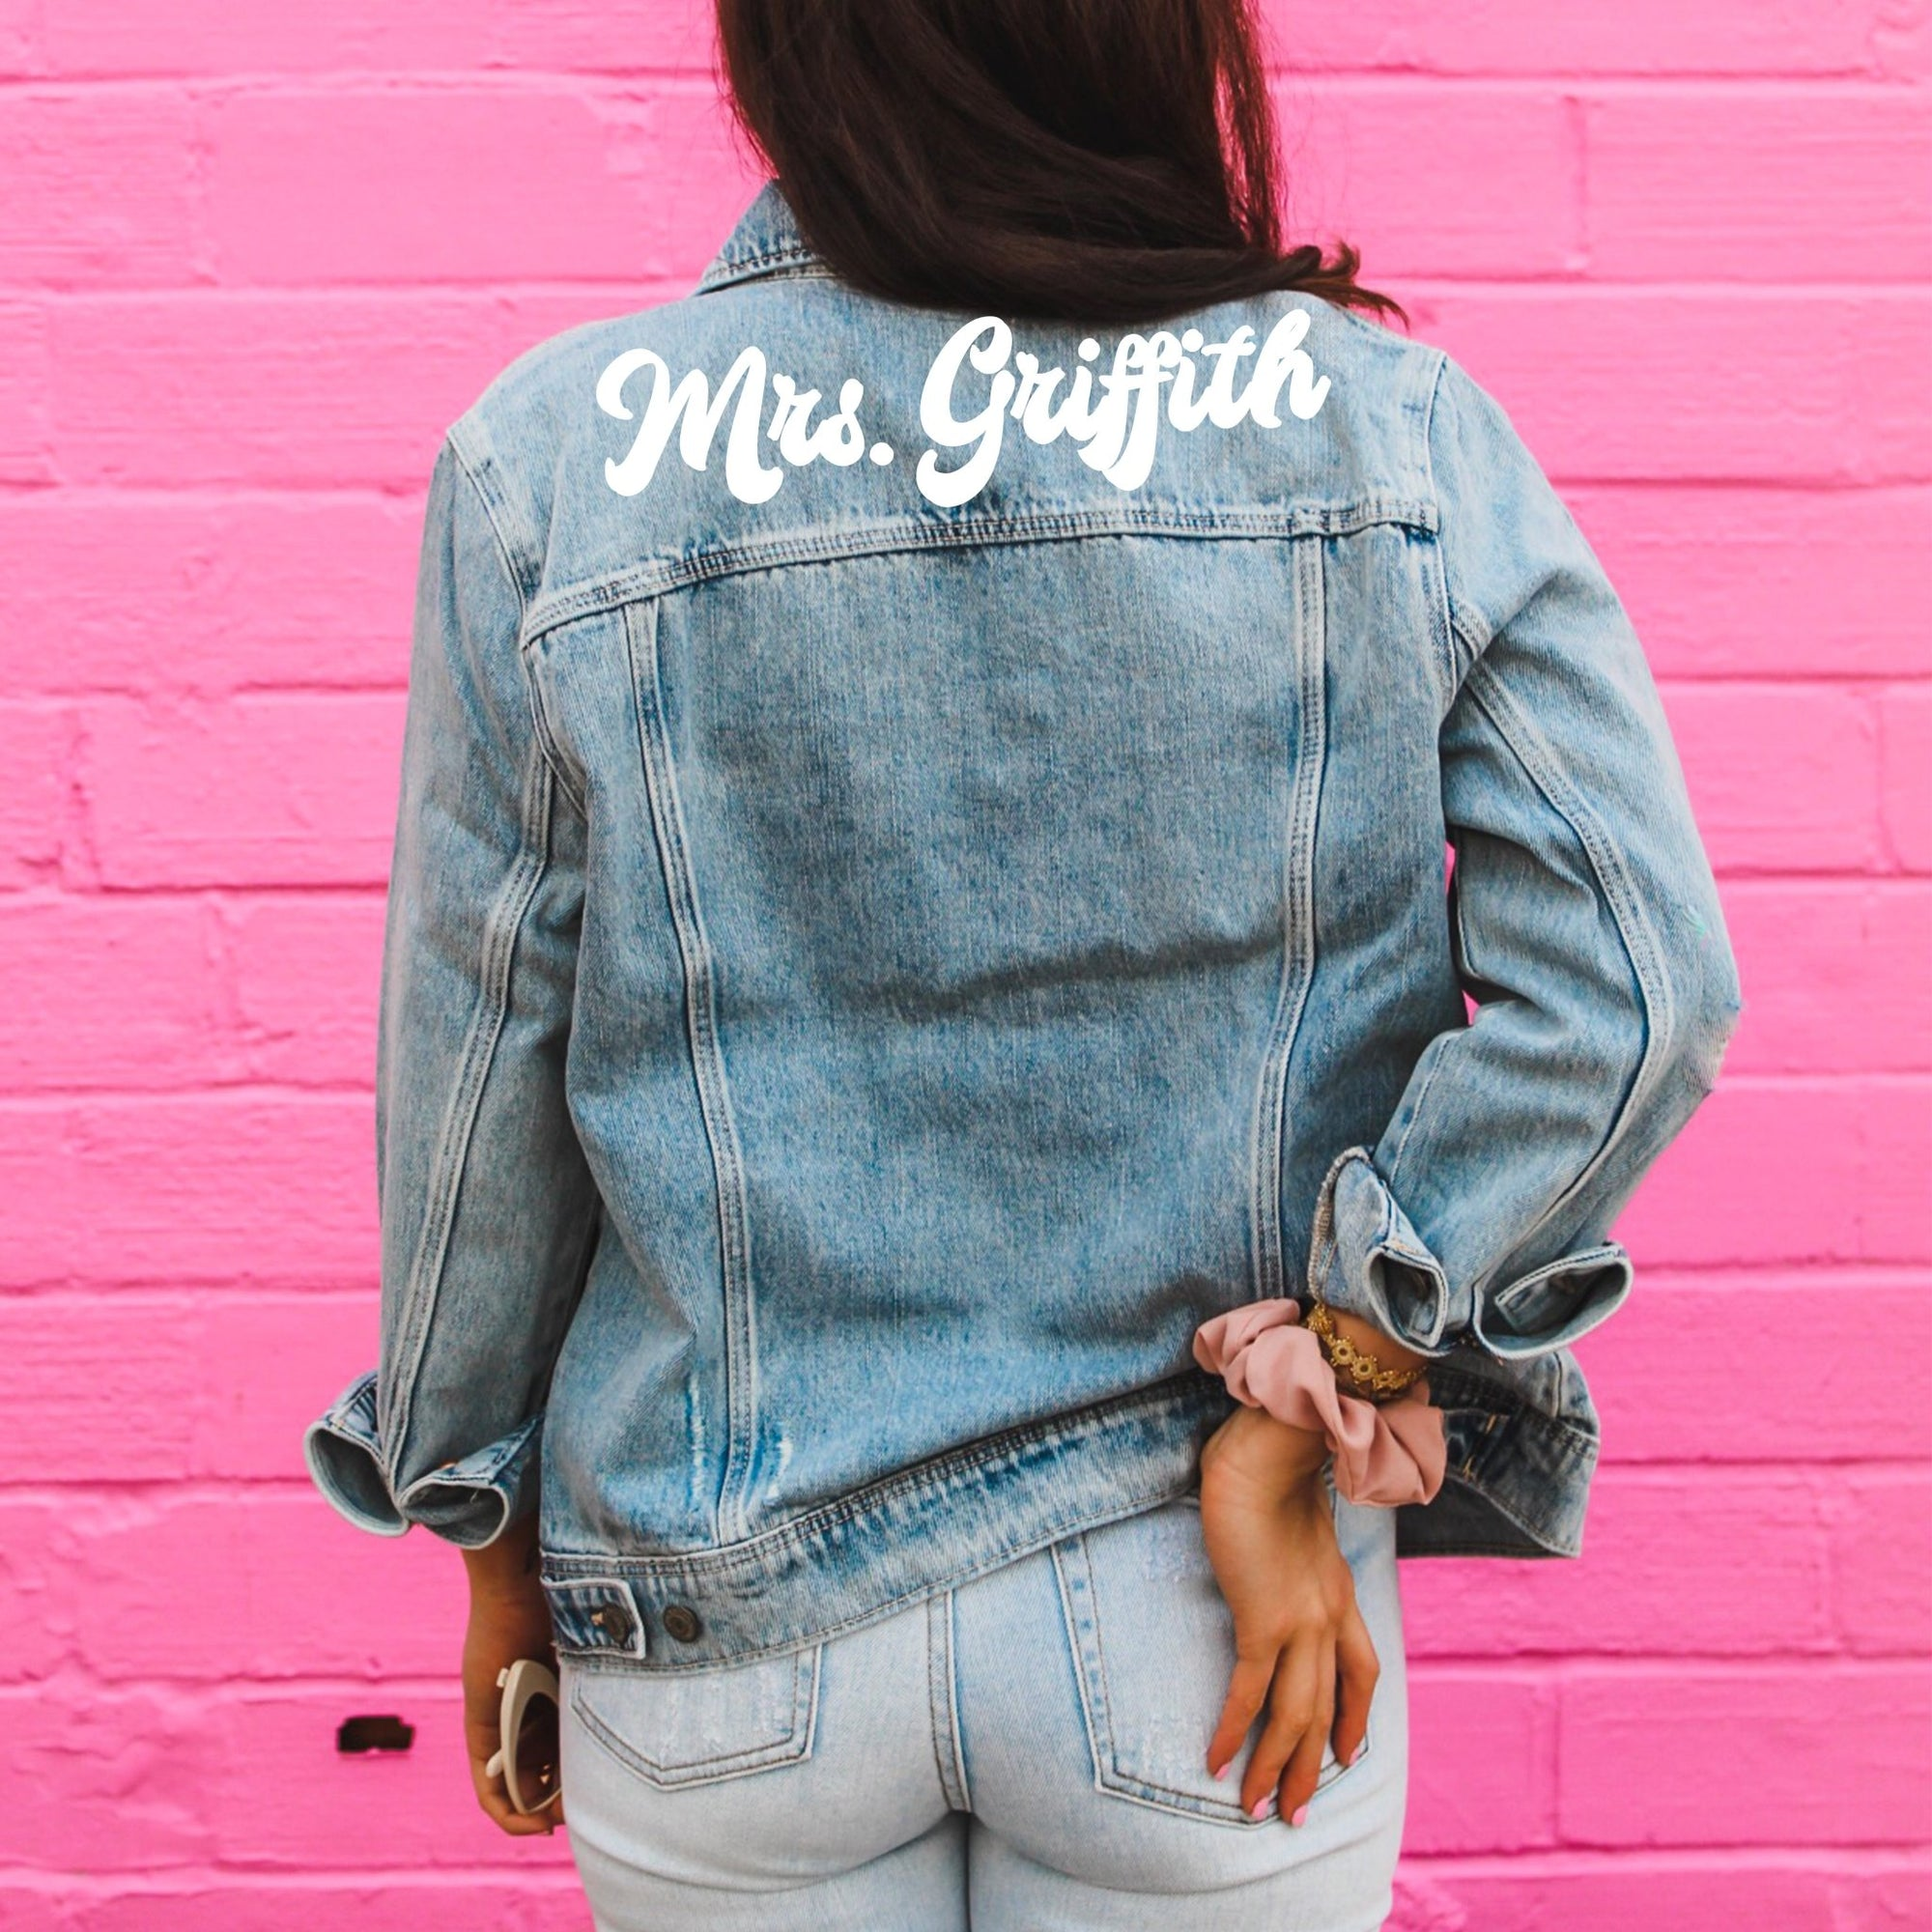 DIY Denim Jacket - Sprinkled With Pink #bachelorette #custom #gifts